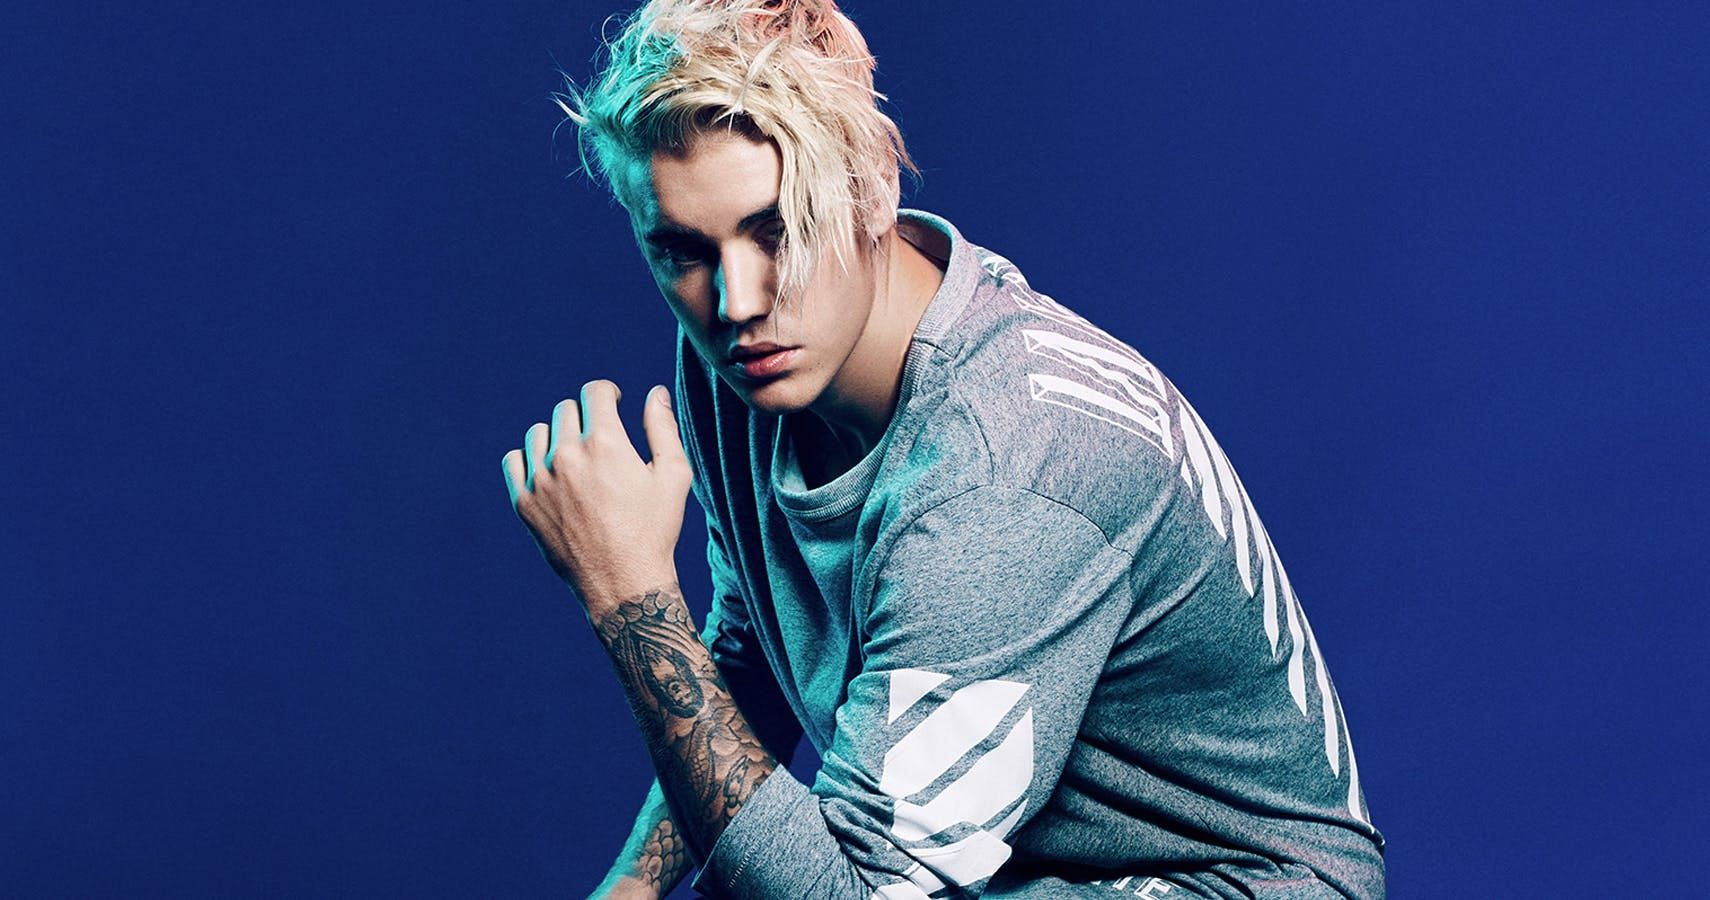 Justin Bieber's Instagram Account Goes Weird | TheRichest